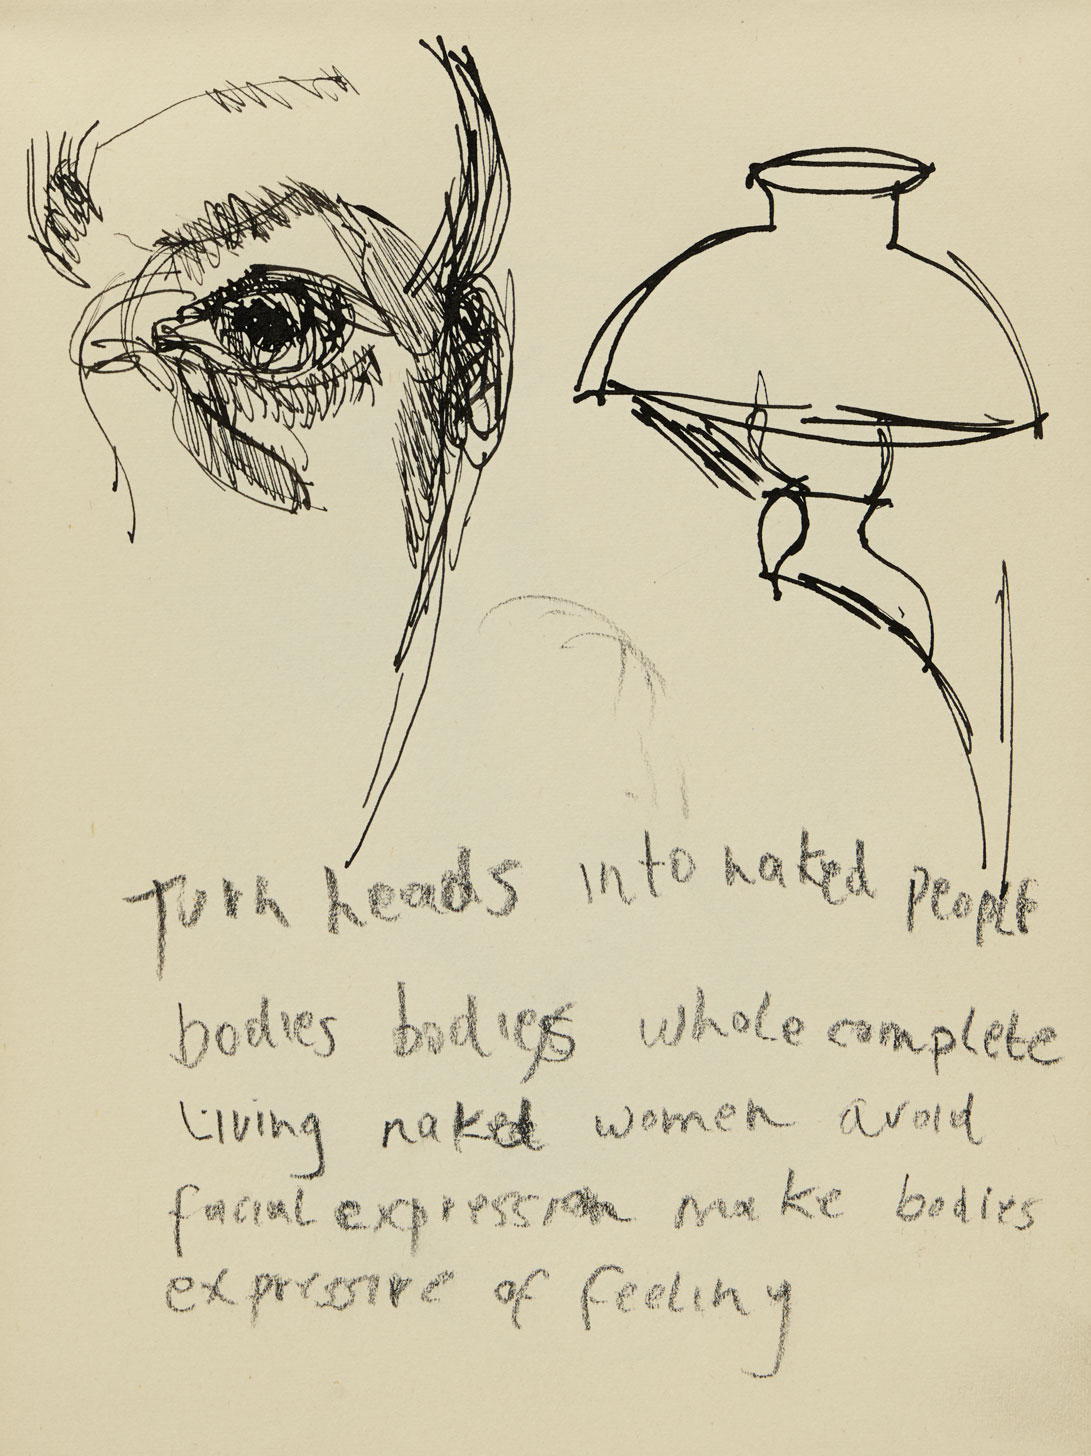 Lucian Freud: Self-portrait with lamp and text, date unknown